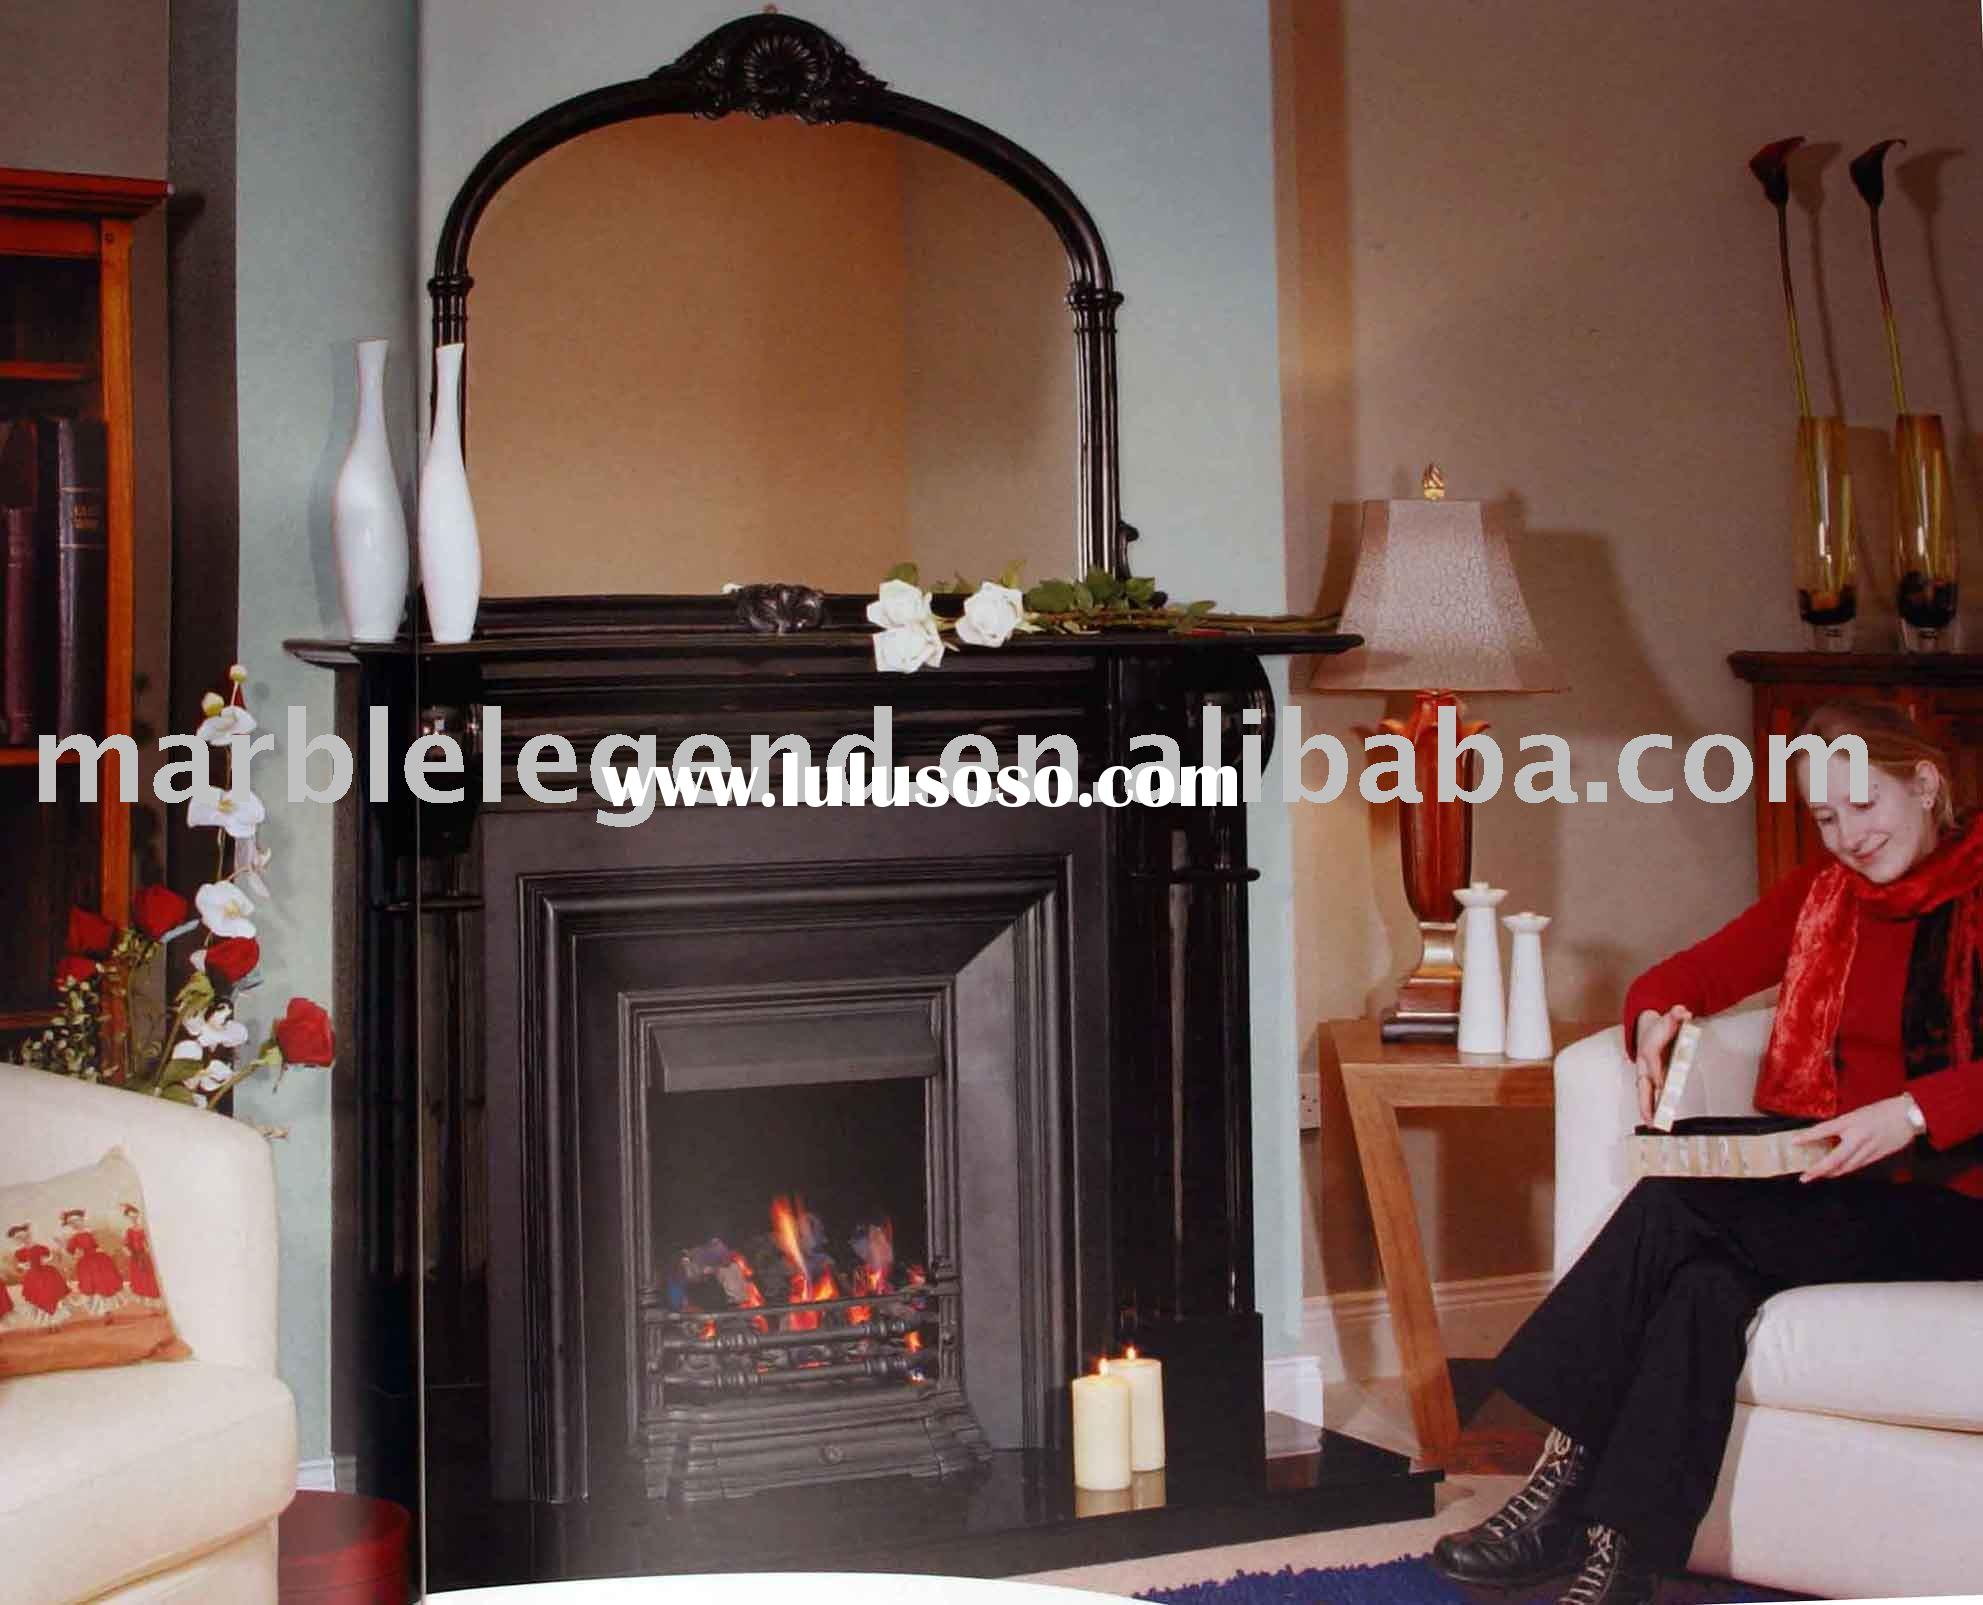 stone fireplace,marble fireplace,mantel,stone mantel,marble mantel,fireplace,english fireplace